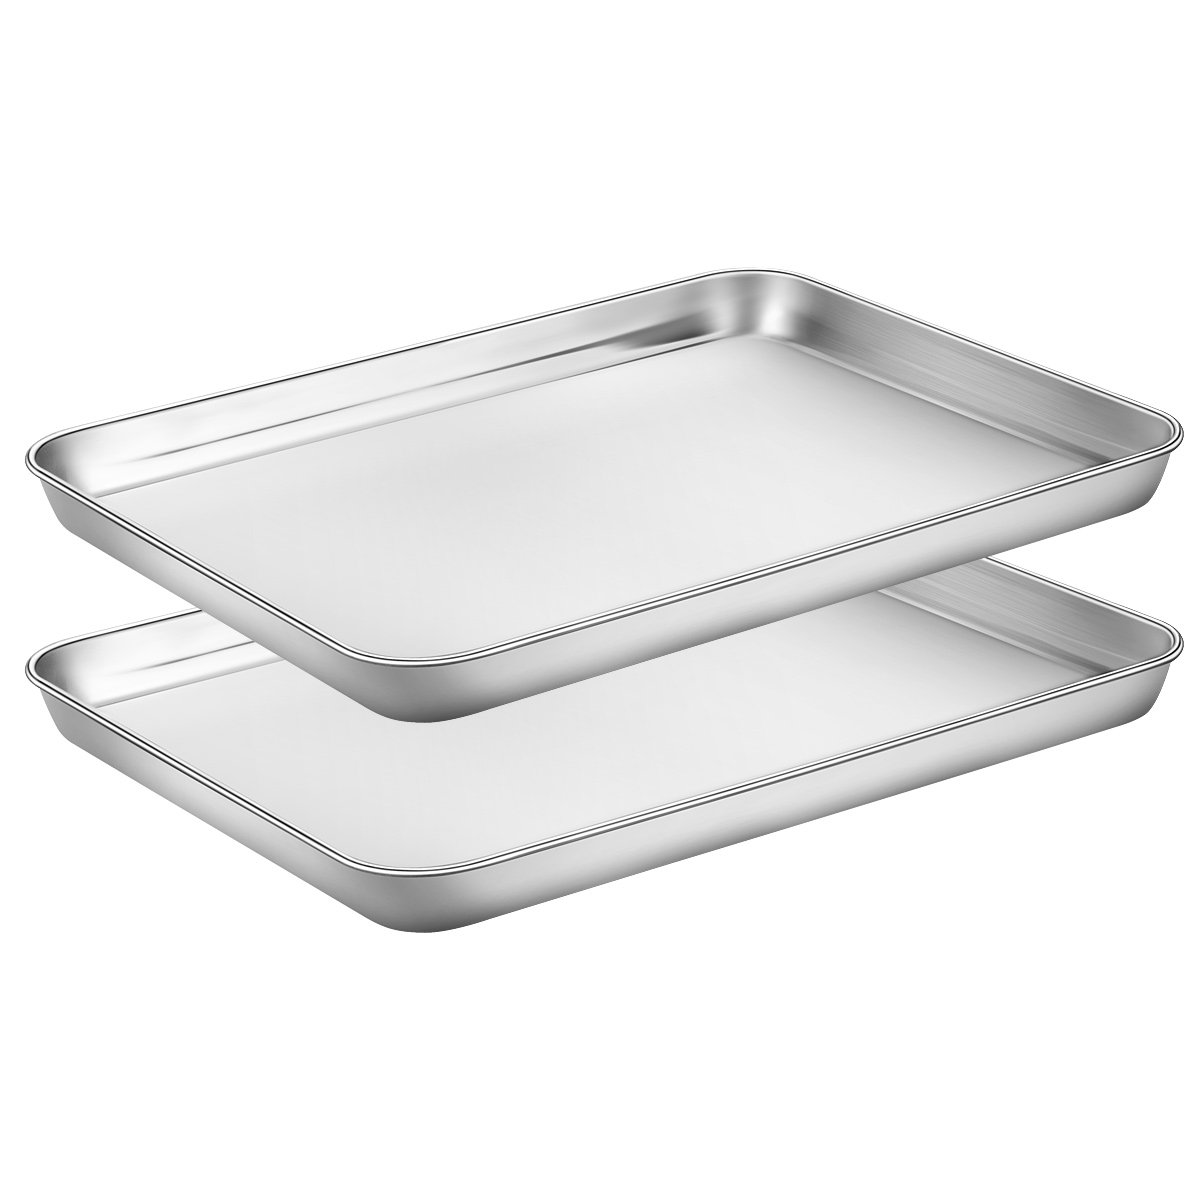 Baking Sheets Set of 2, HKJ Chef Cookie Sheets 2 Pieces & Stainless Steel Baking Pans & Toaster Oven Tray Pans, Rectangle Size 9L x 7W x 1H inch & Non Toxic & Healthy & Easy Clean